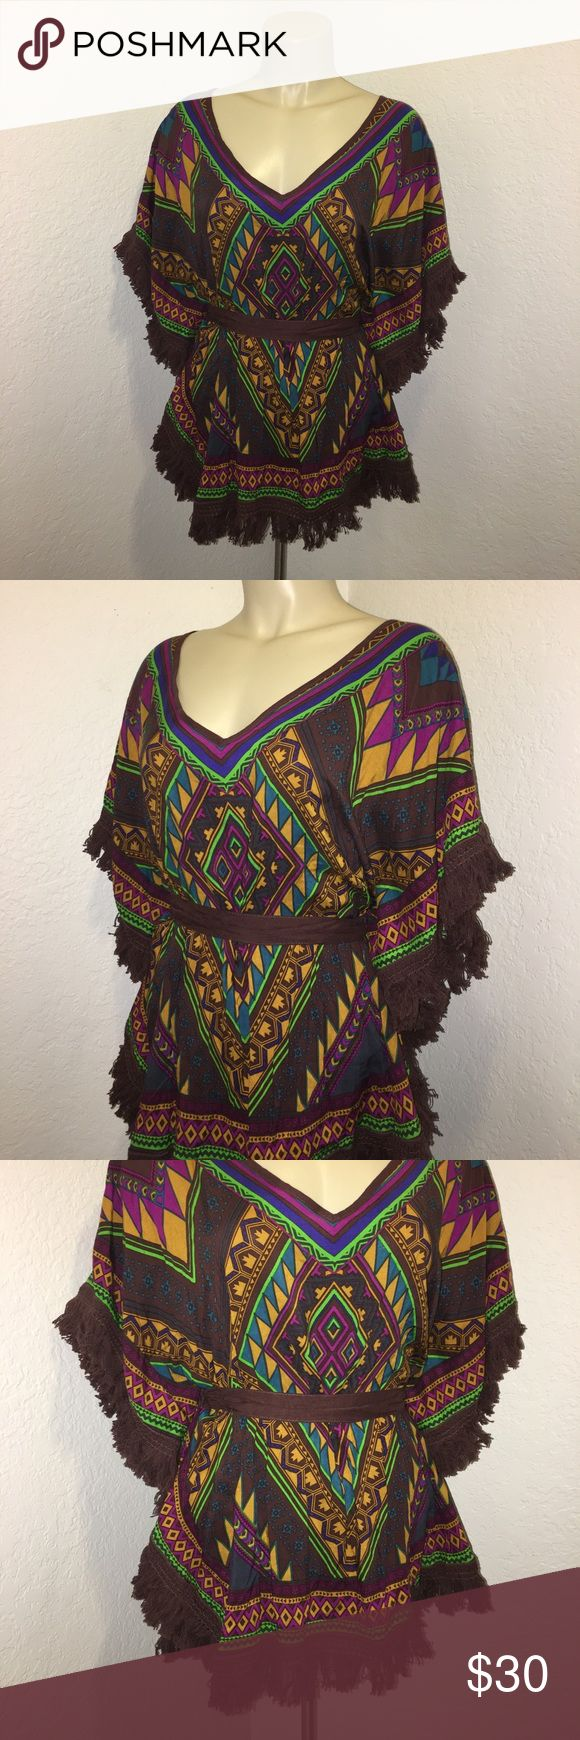 Flying Tomato Boho Fringe Aztec Festival Blouse Stunning blouse in excellent brand new with tags condition. Size large. Brand: Flying Tomato. Super chic and stylish. Boho fringe festival blouse top. Flying Tomato Tops Blouses